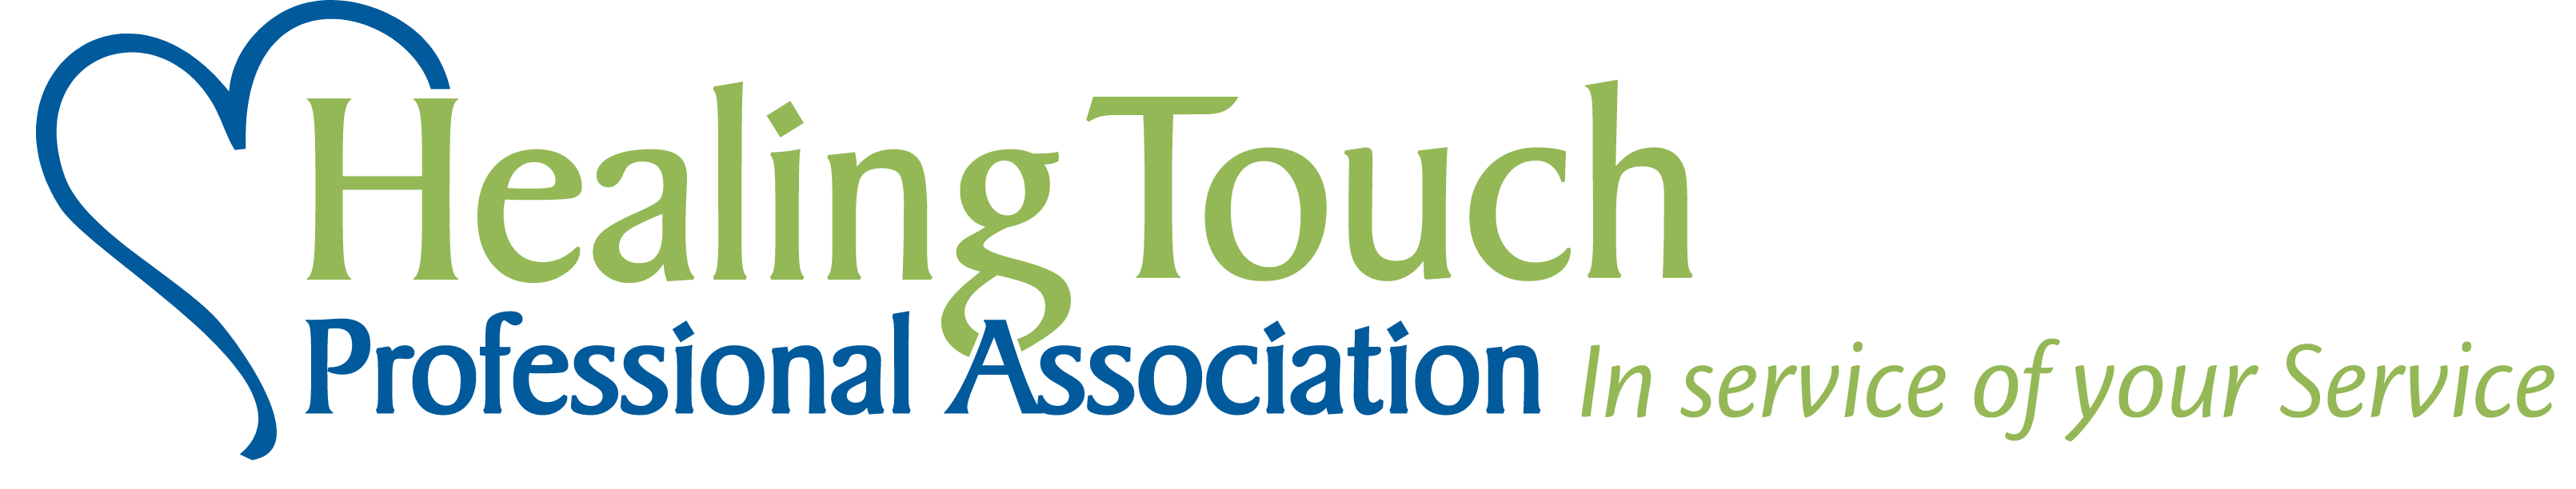 Healing Touch Professional Association - HTPA